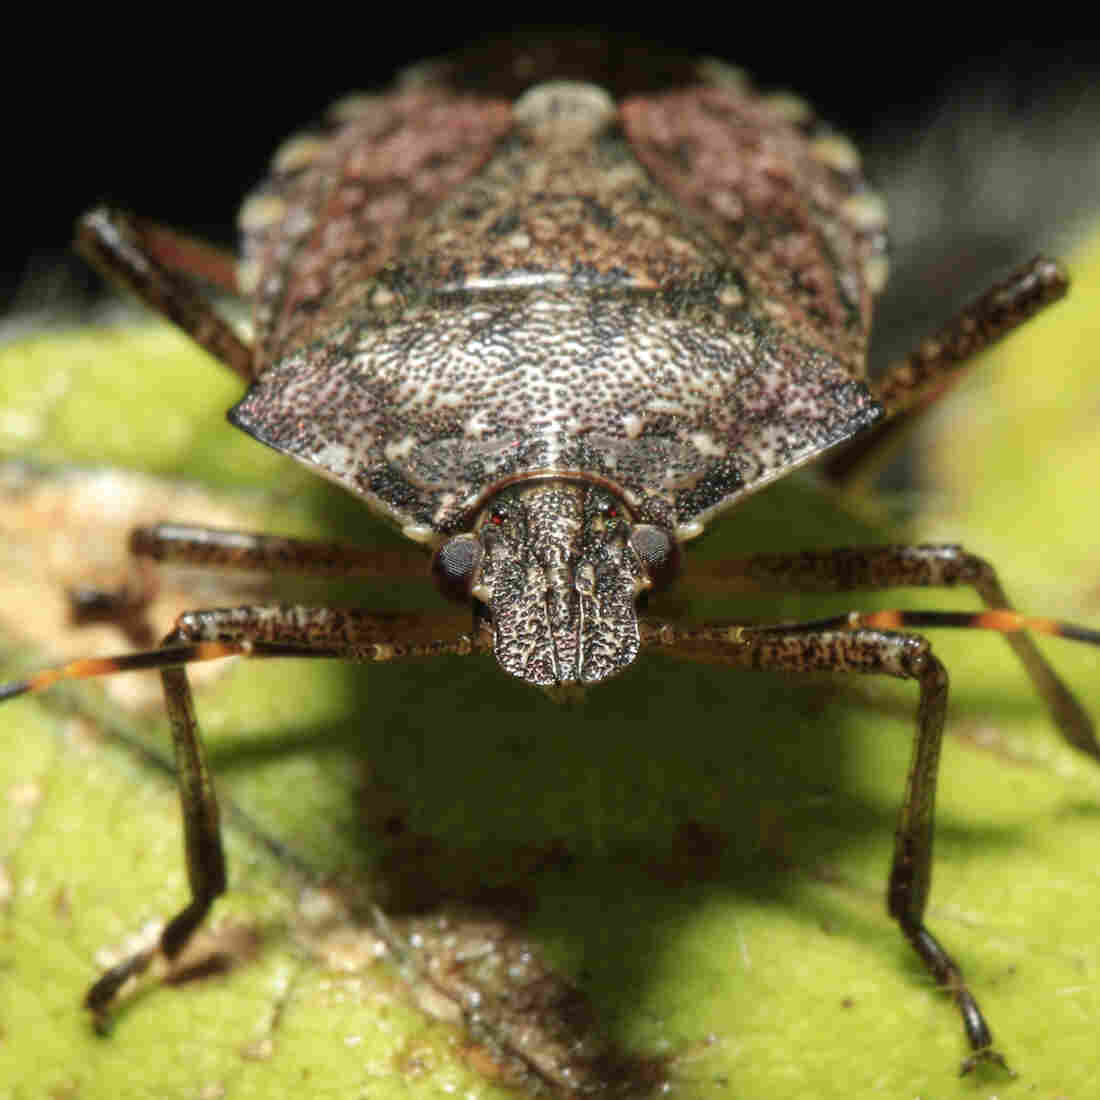 From 'Death Jars' To Wasps: A Quest To Stamp Out The Stink Bug